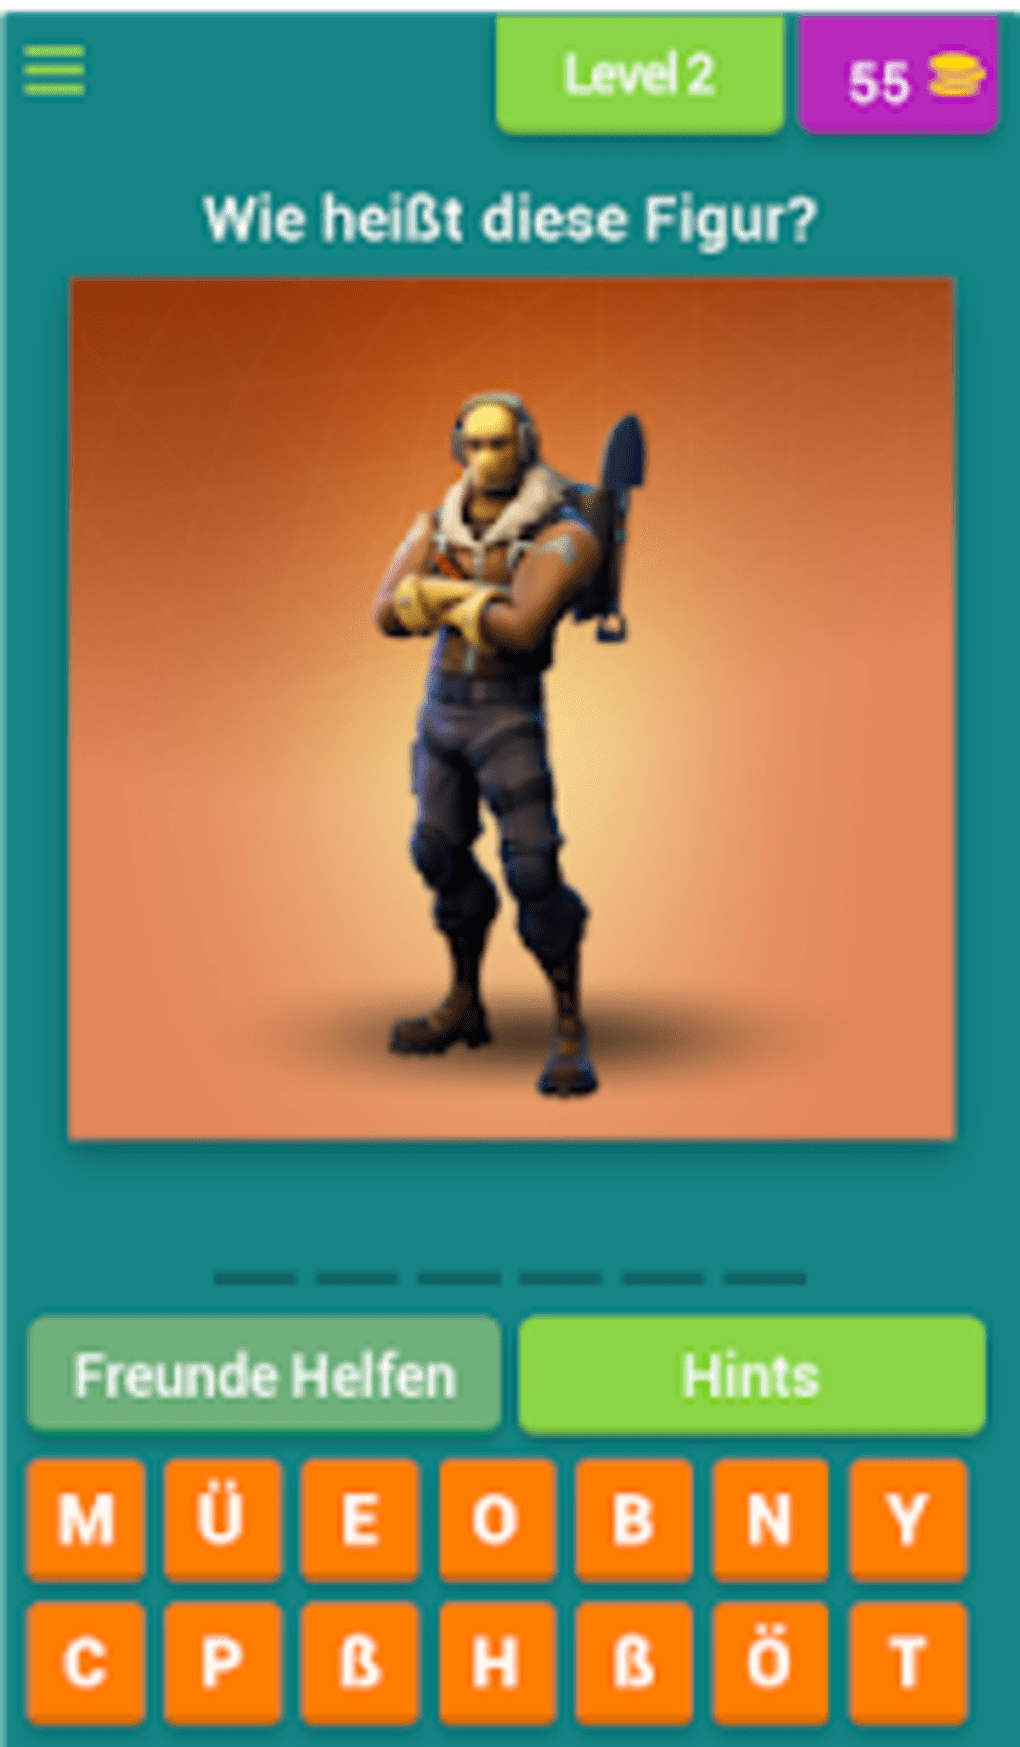 Download Guess The Fortnite Skin For Windows 10 App For